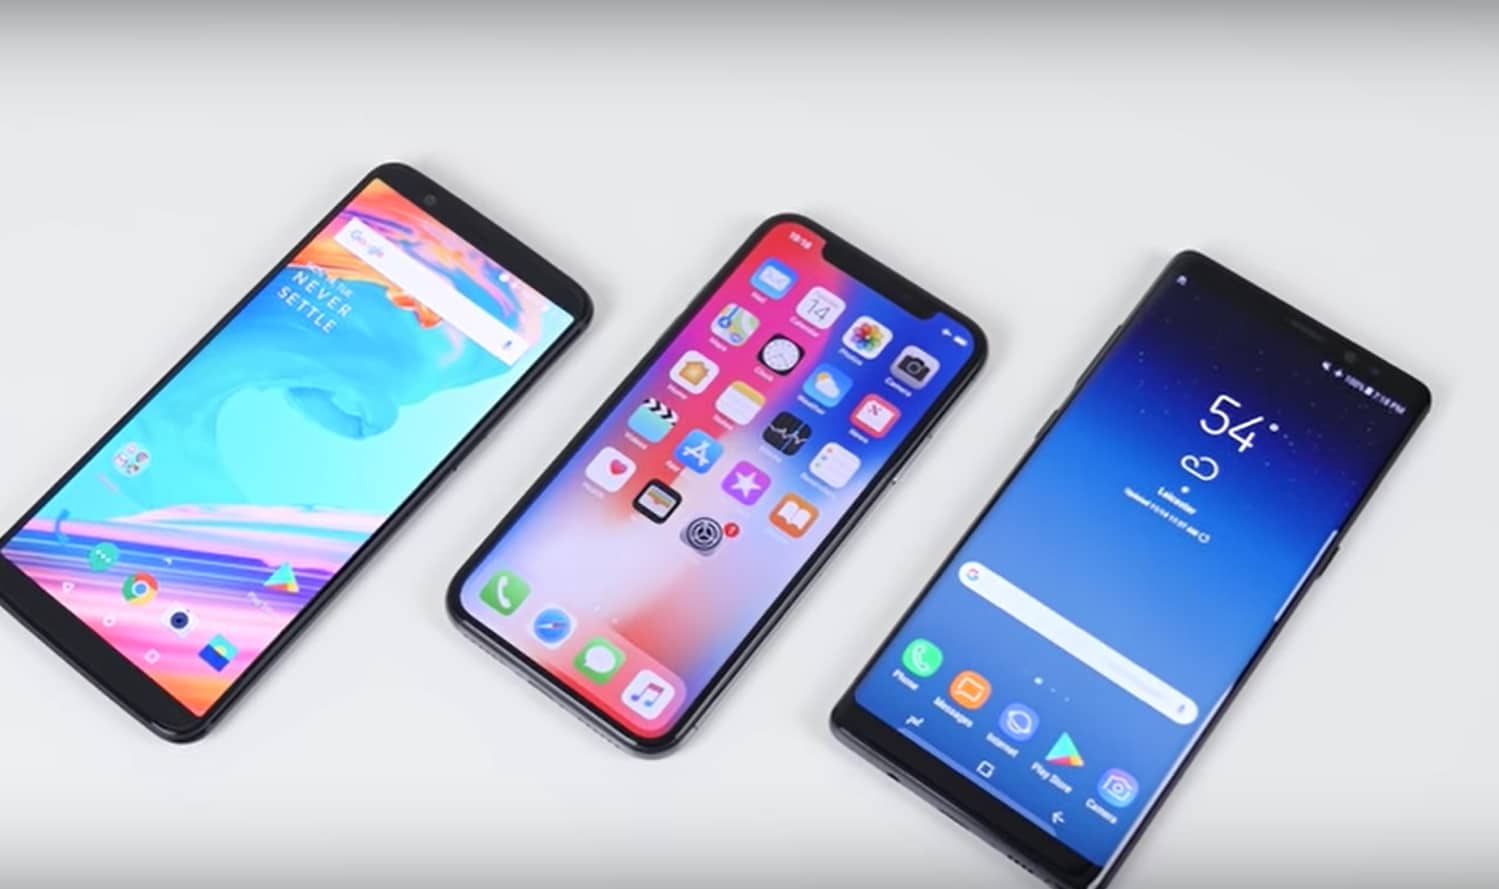 oneplus 5t iphone x galaxy note 8